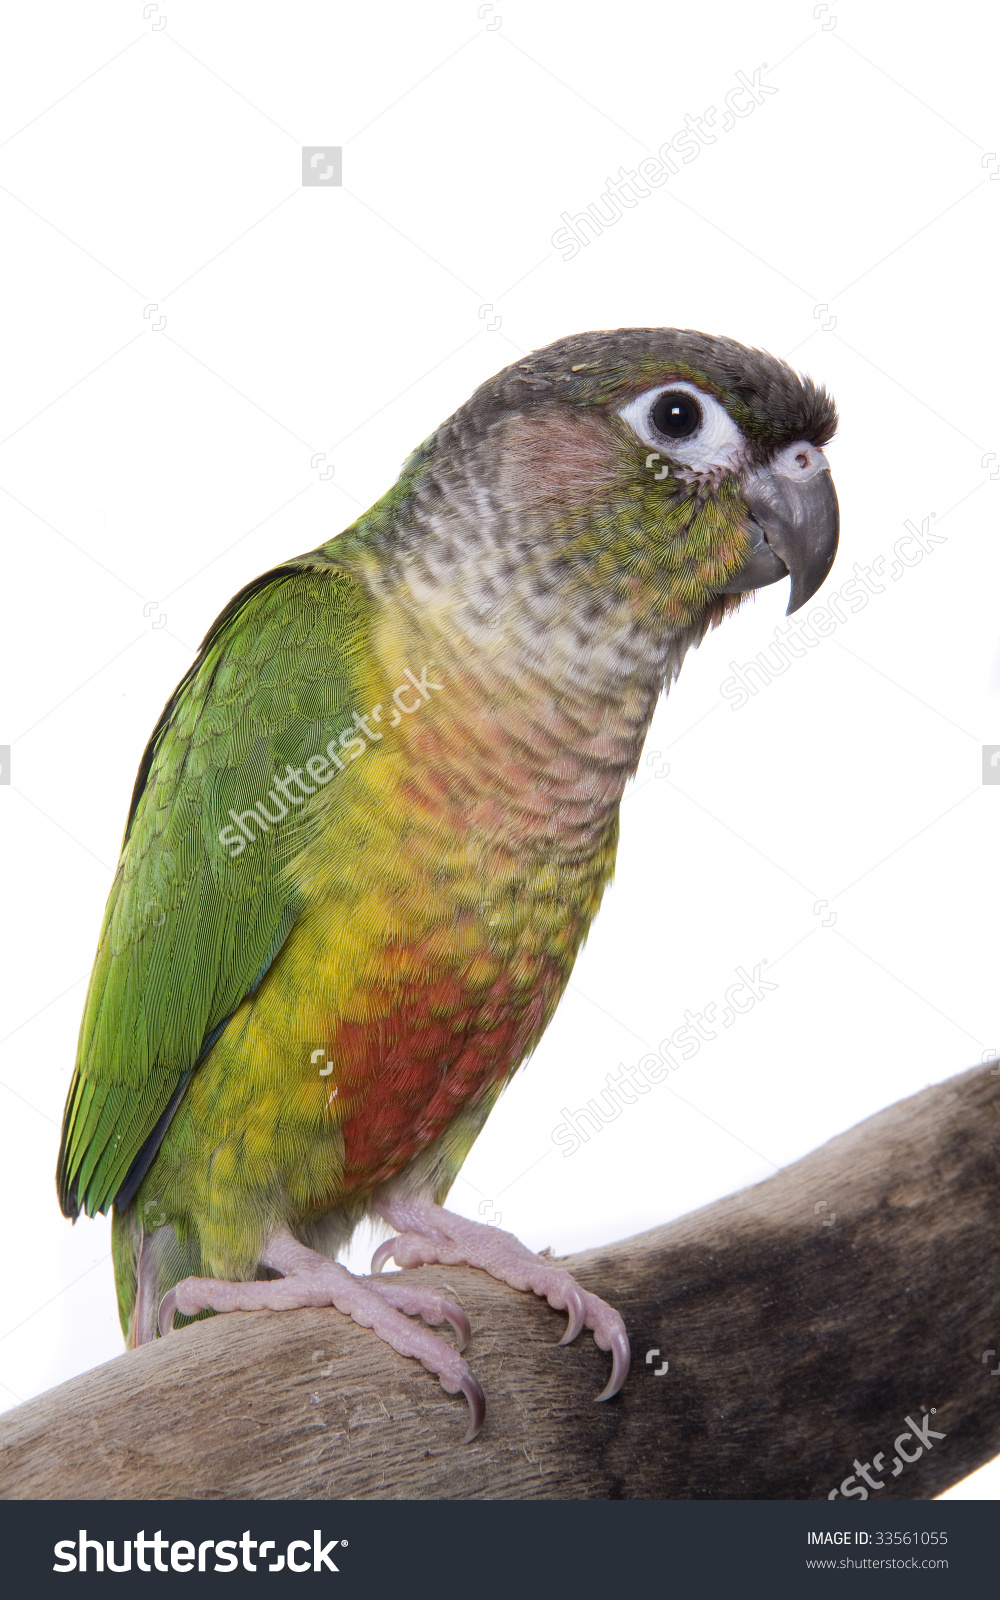 Conure clipart #1, Download drawings